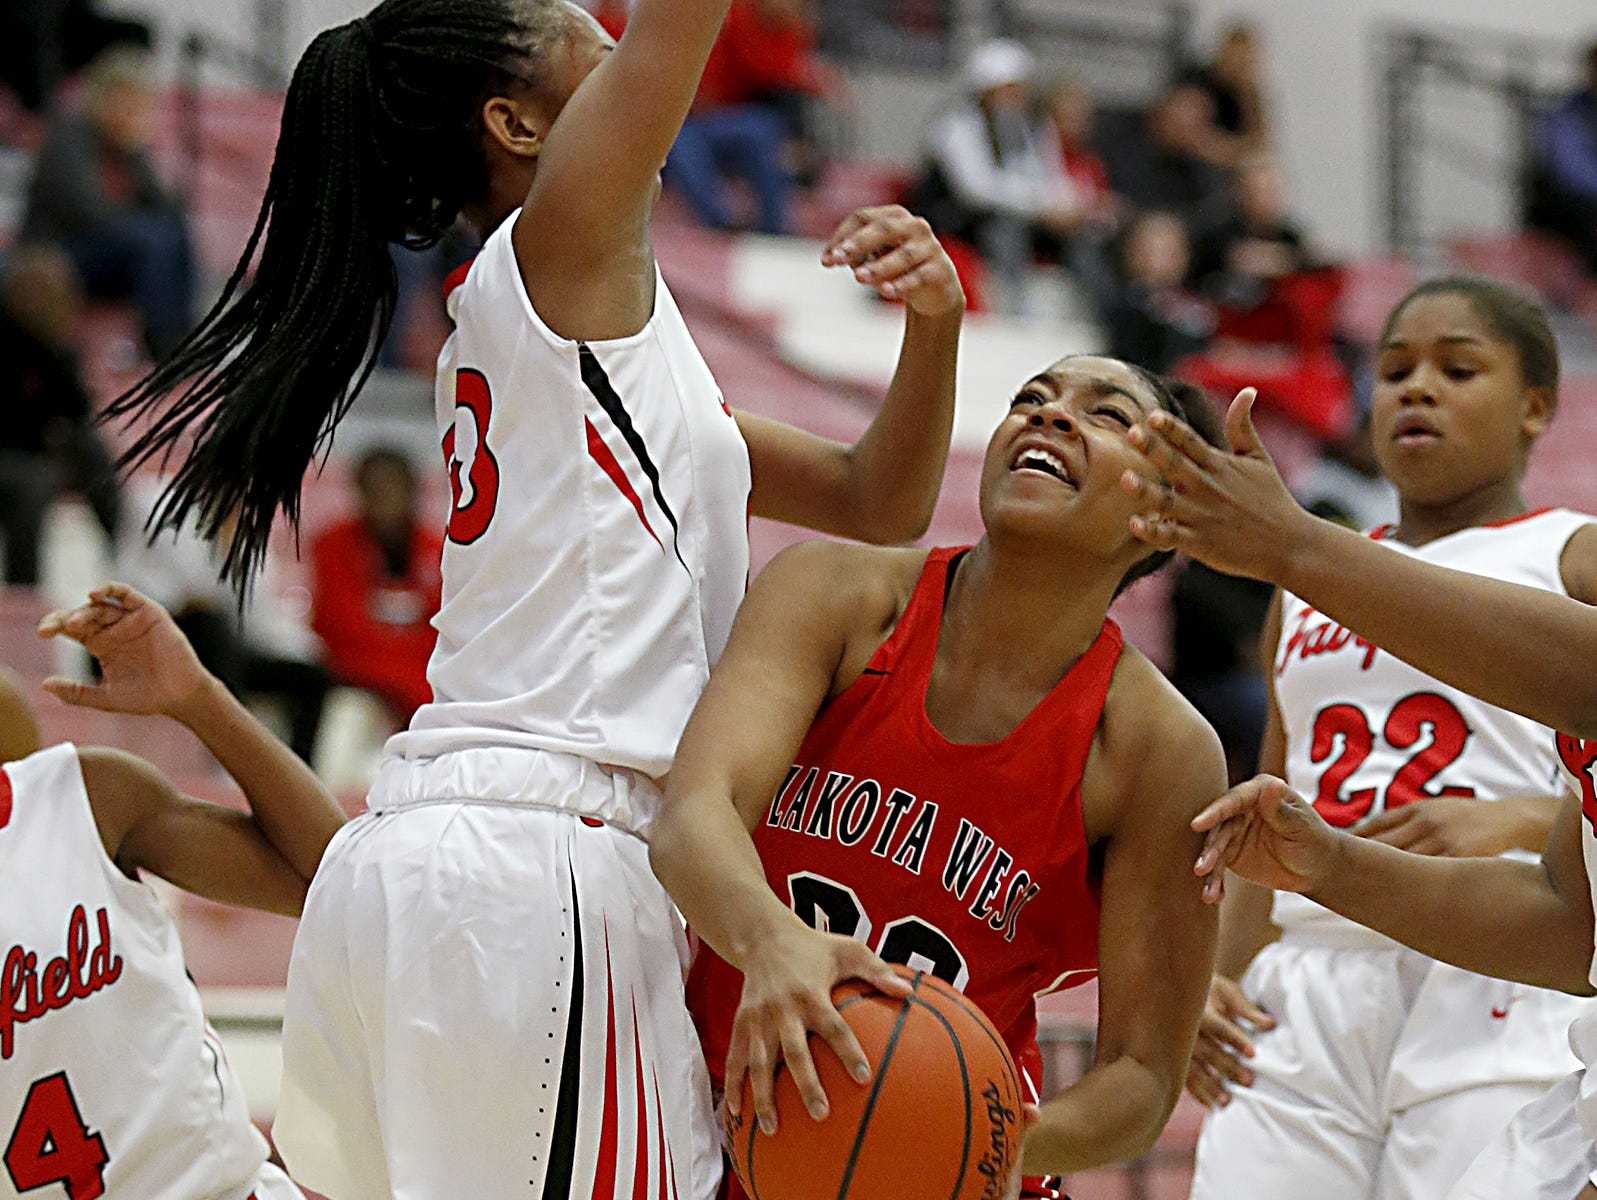 Lakota West guard Jaydis Gales is covered by Fairfield forward Tori Williams during their game at Fairfield Saturday, Dec. 1, 2018.